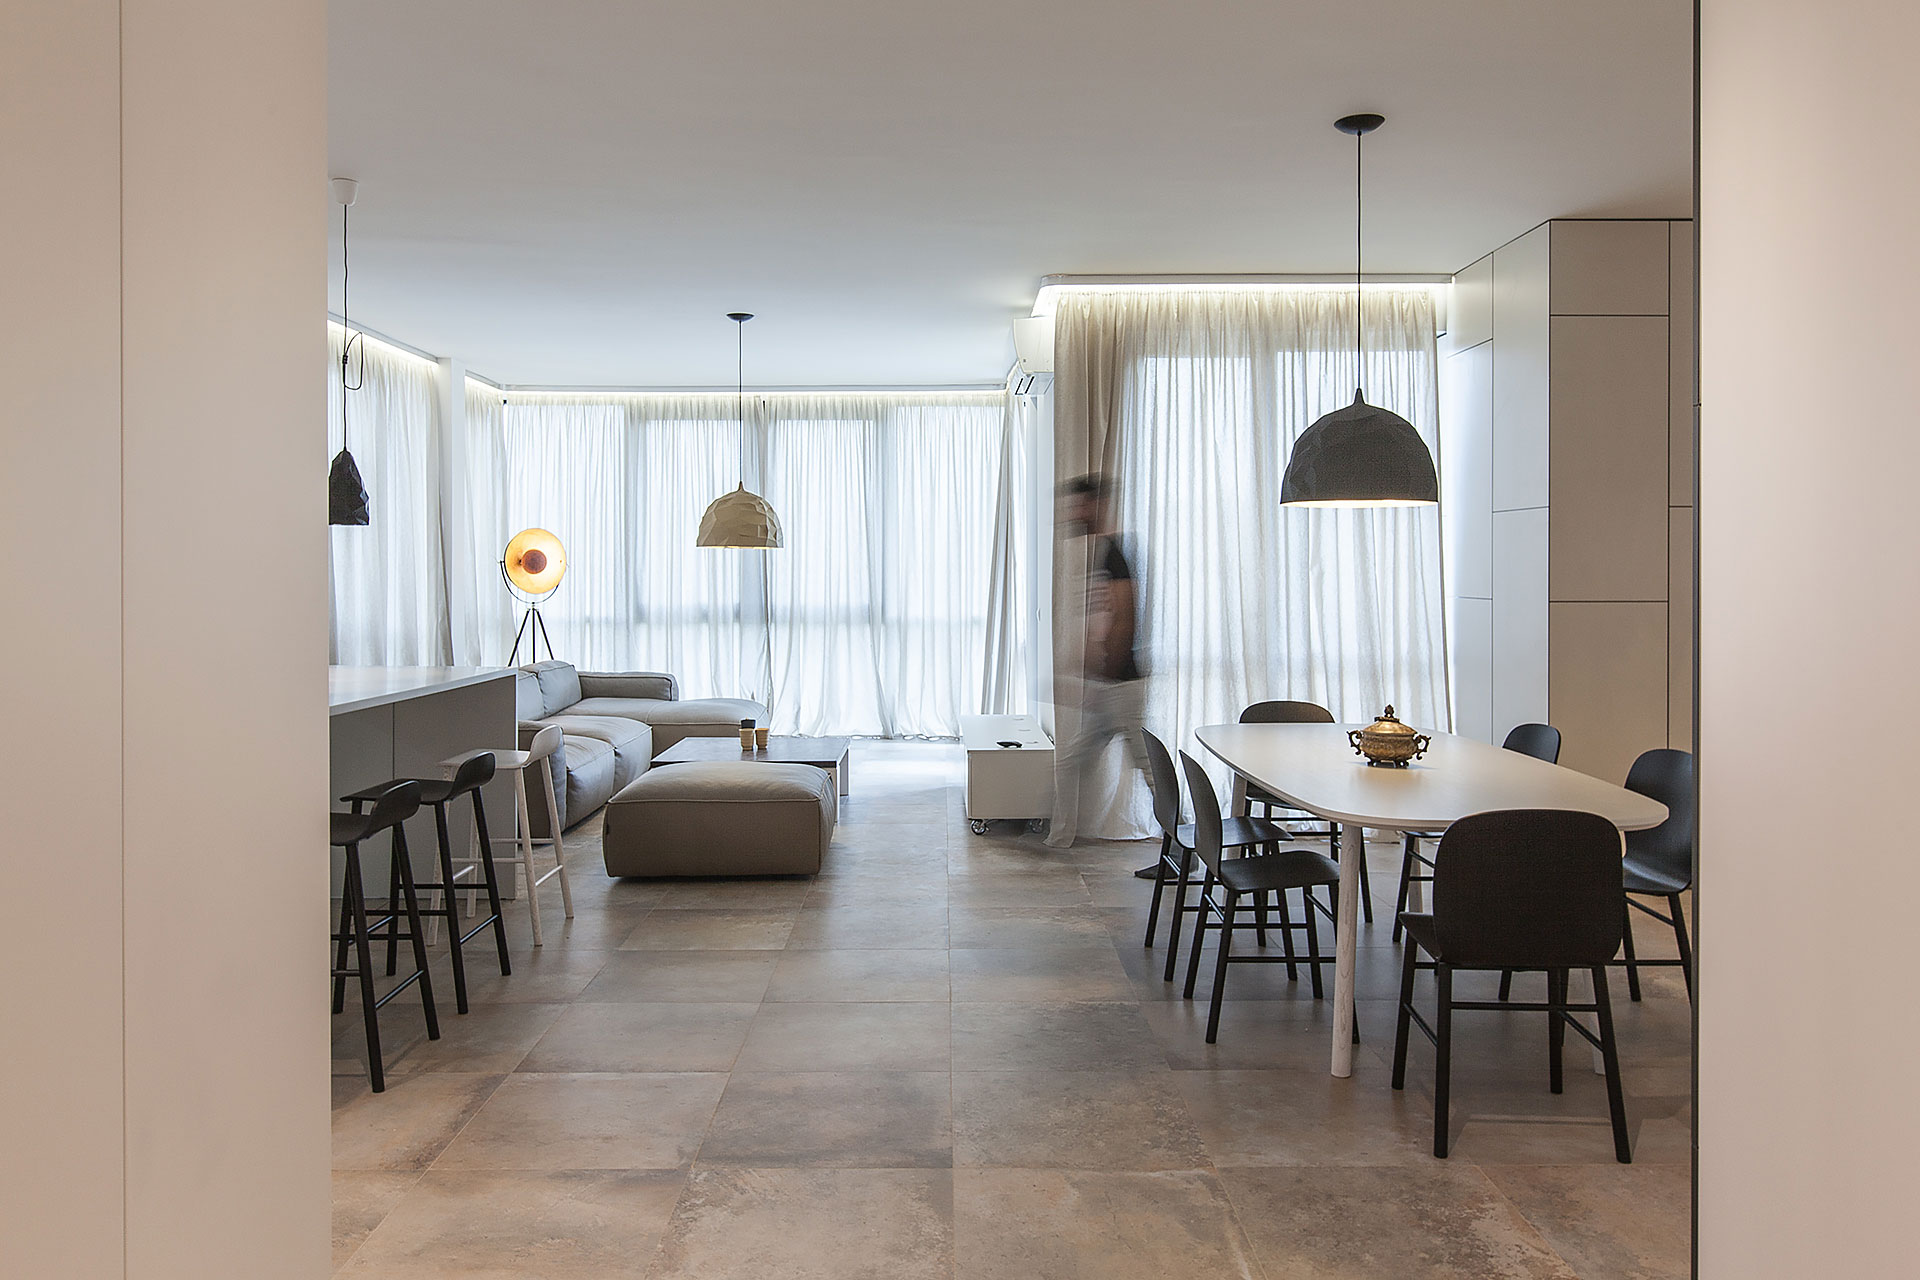 Лофт - апартаменты Victory Apartment в Софии, Болгария от студии VOOOD, HQ architecture, HQarch, HQ arch, high quality architecture